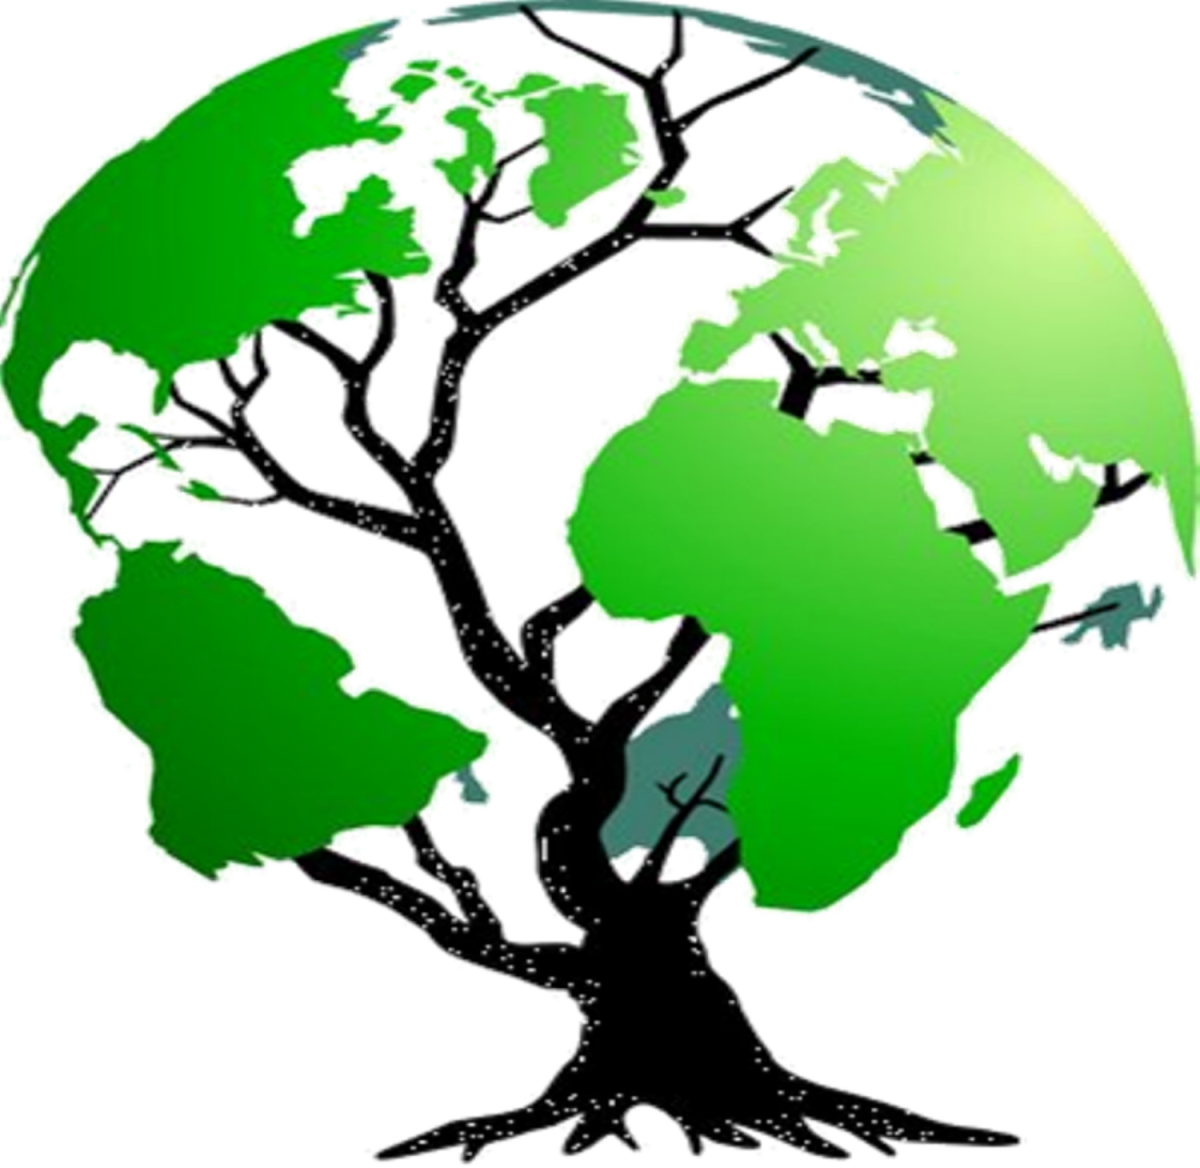 Natural Sustainability Recycling Environment Environmentalism Recycle Pollution PNG Image